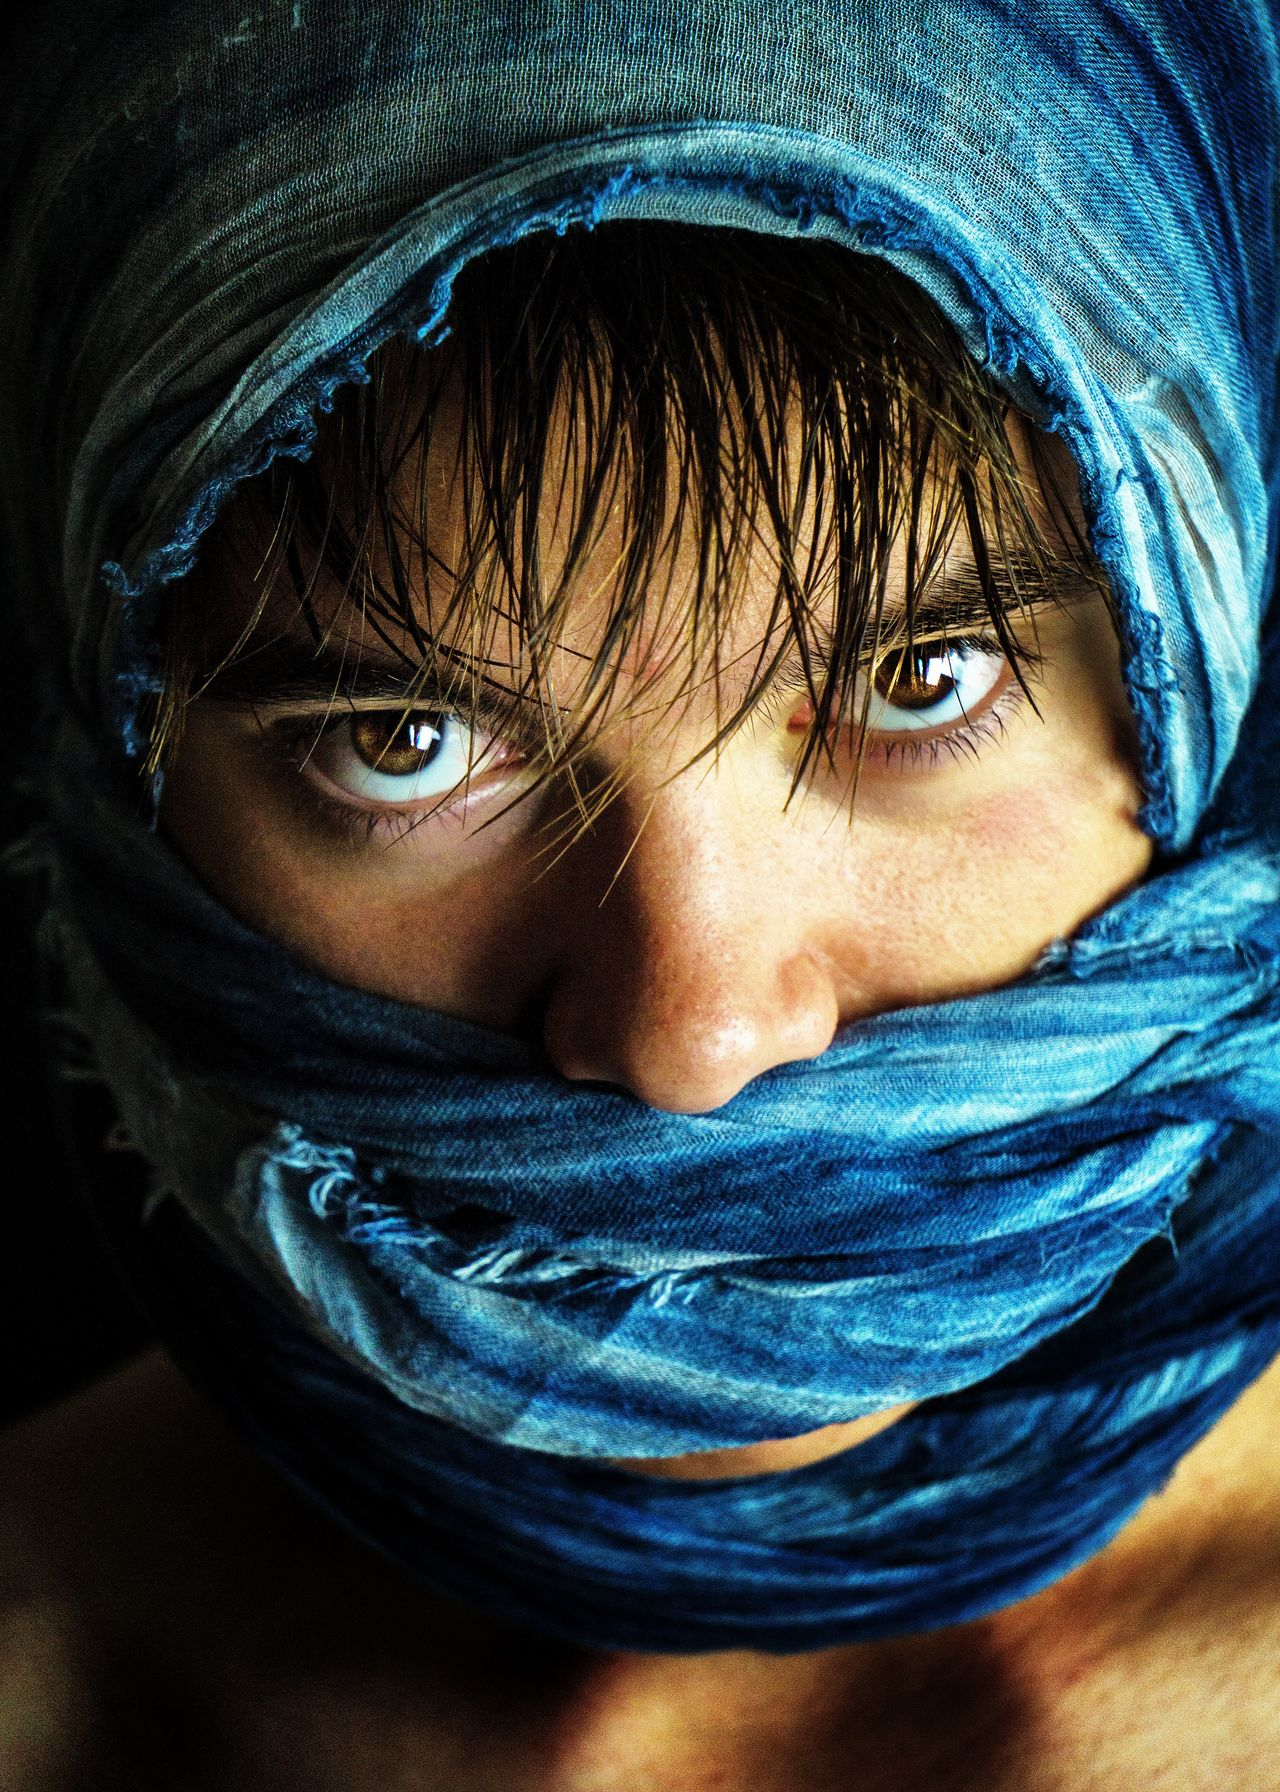 Portrait au foulard. Looking At Camera Portrait Human Face Human Eye One Person Real People Human Body Part Headshot Blue Young Adult The Portraitist - 2017 EyeEm Awards